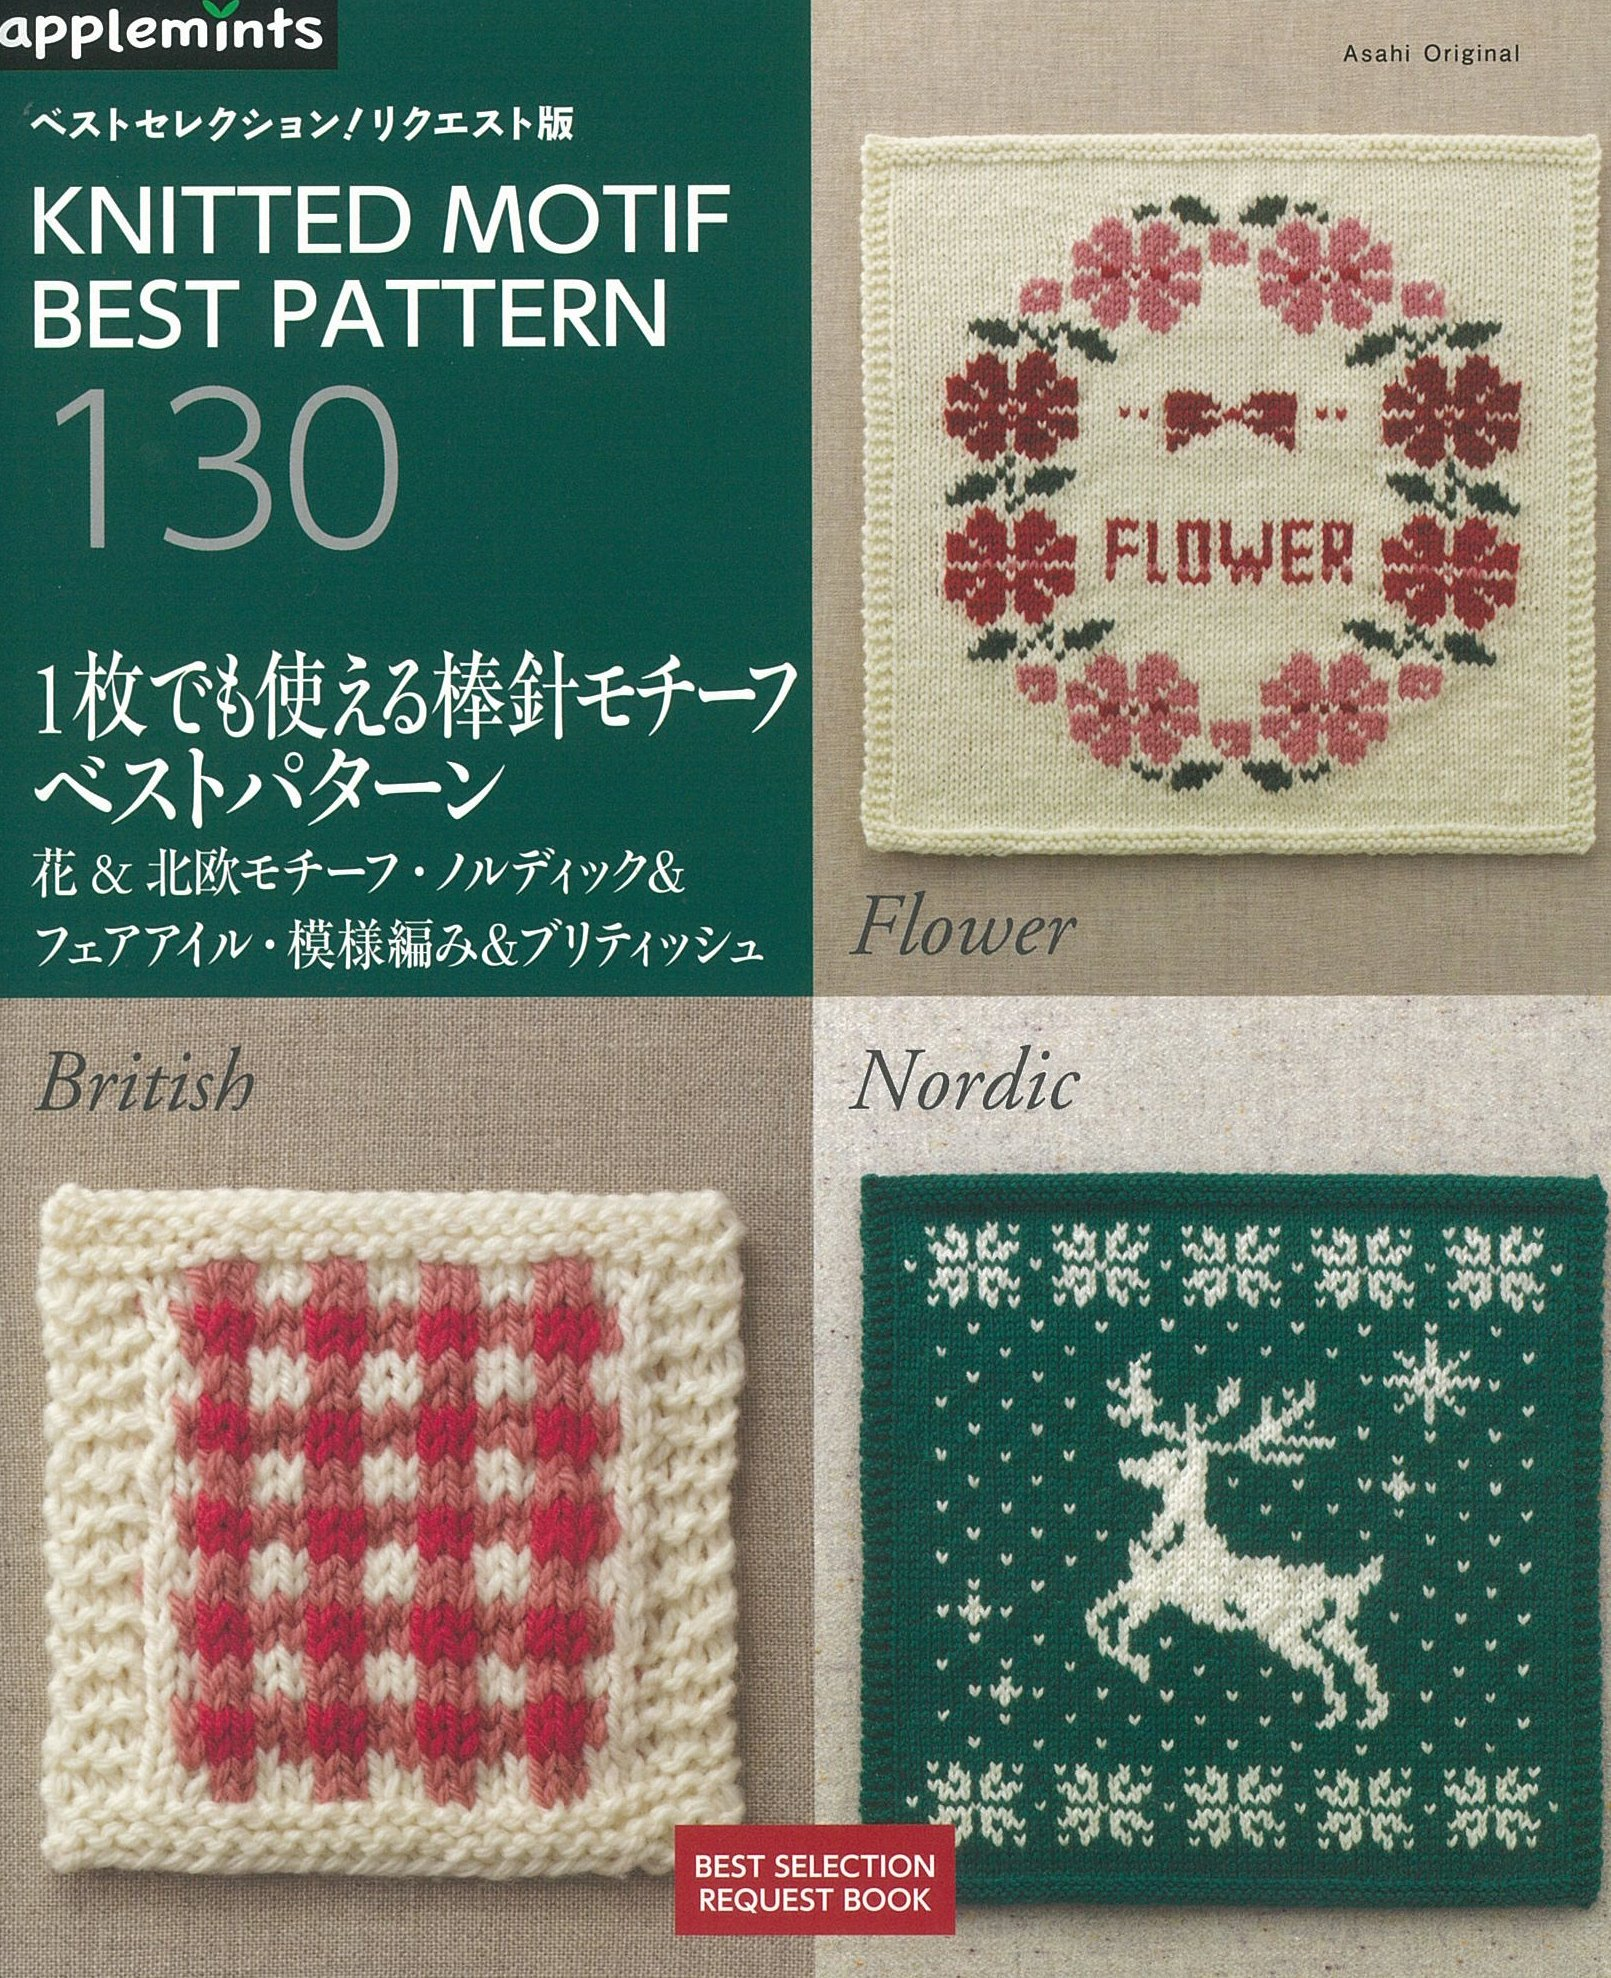 Best Selection! Knitted Motif Best Pattern 150